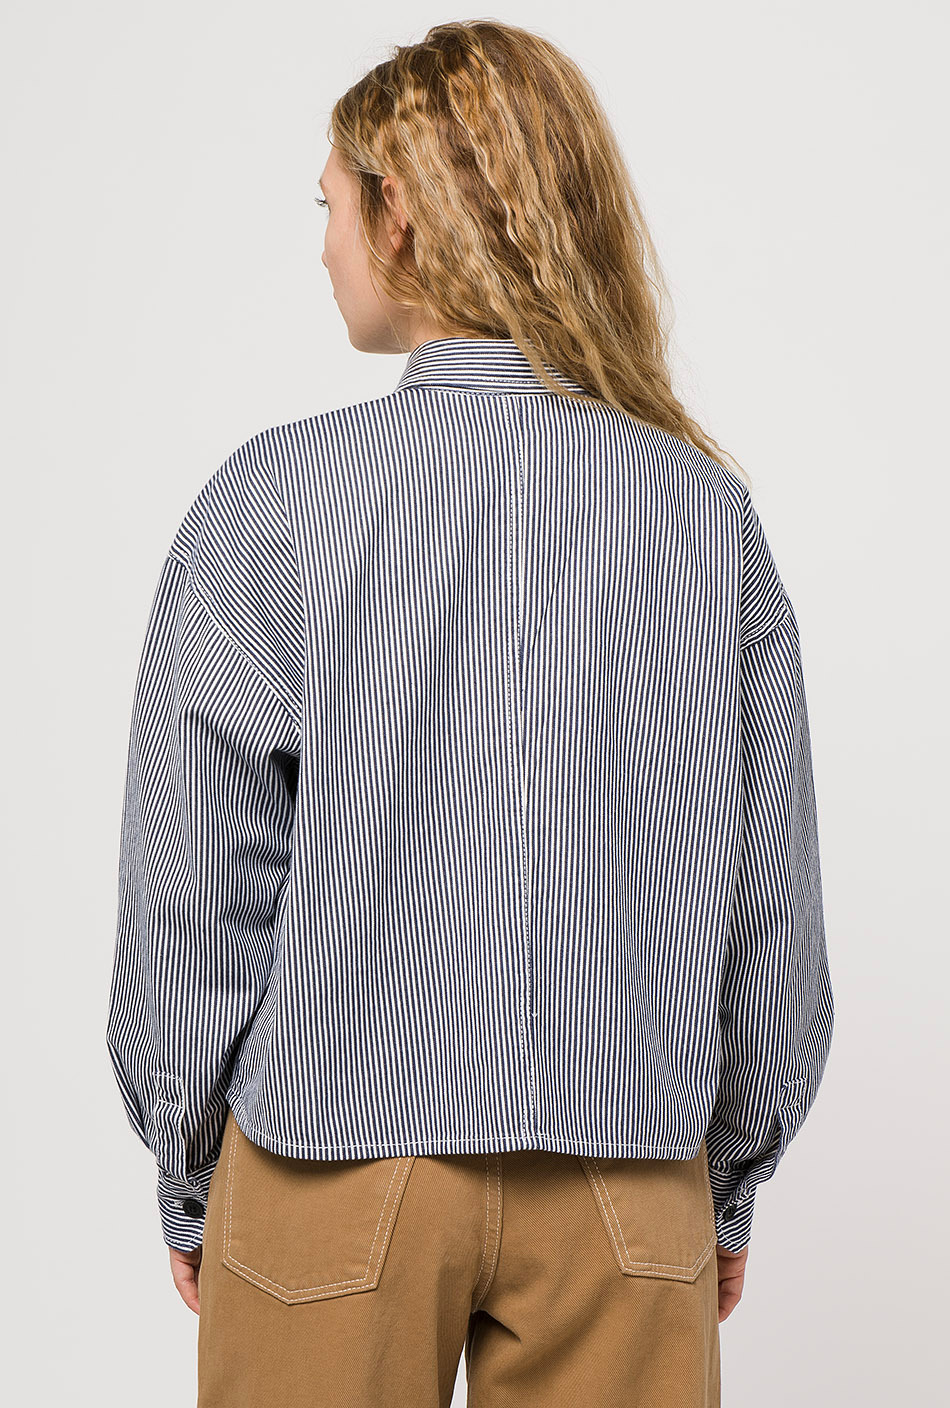 Urban Stripes Shirt